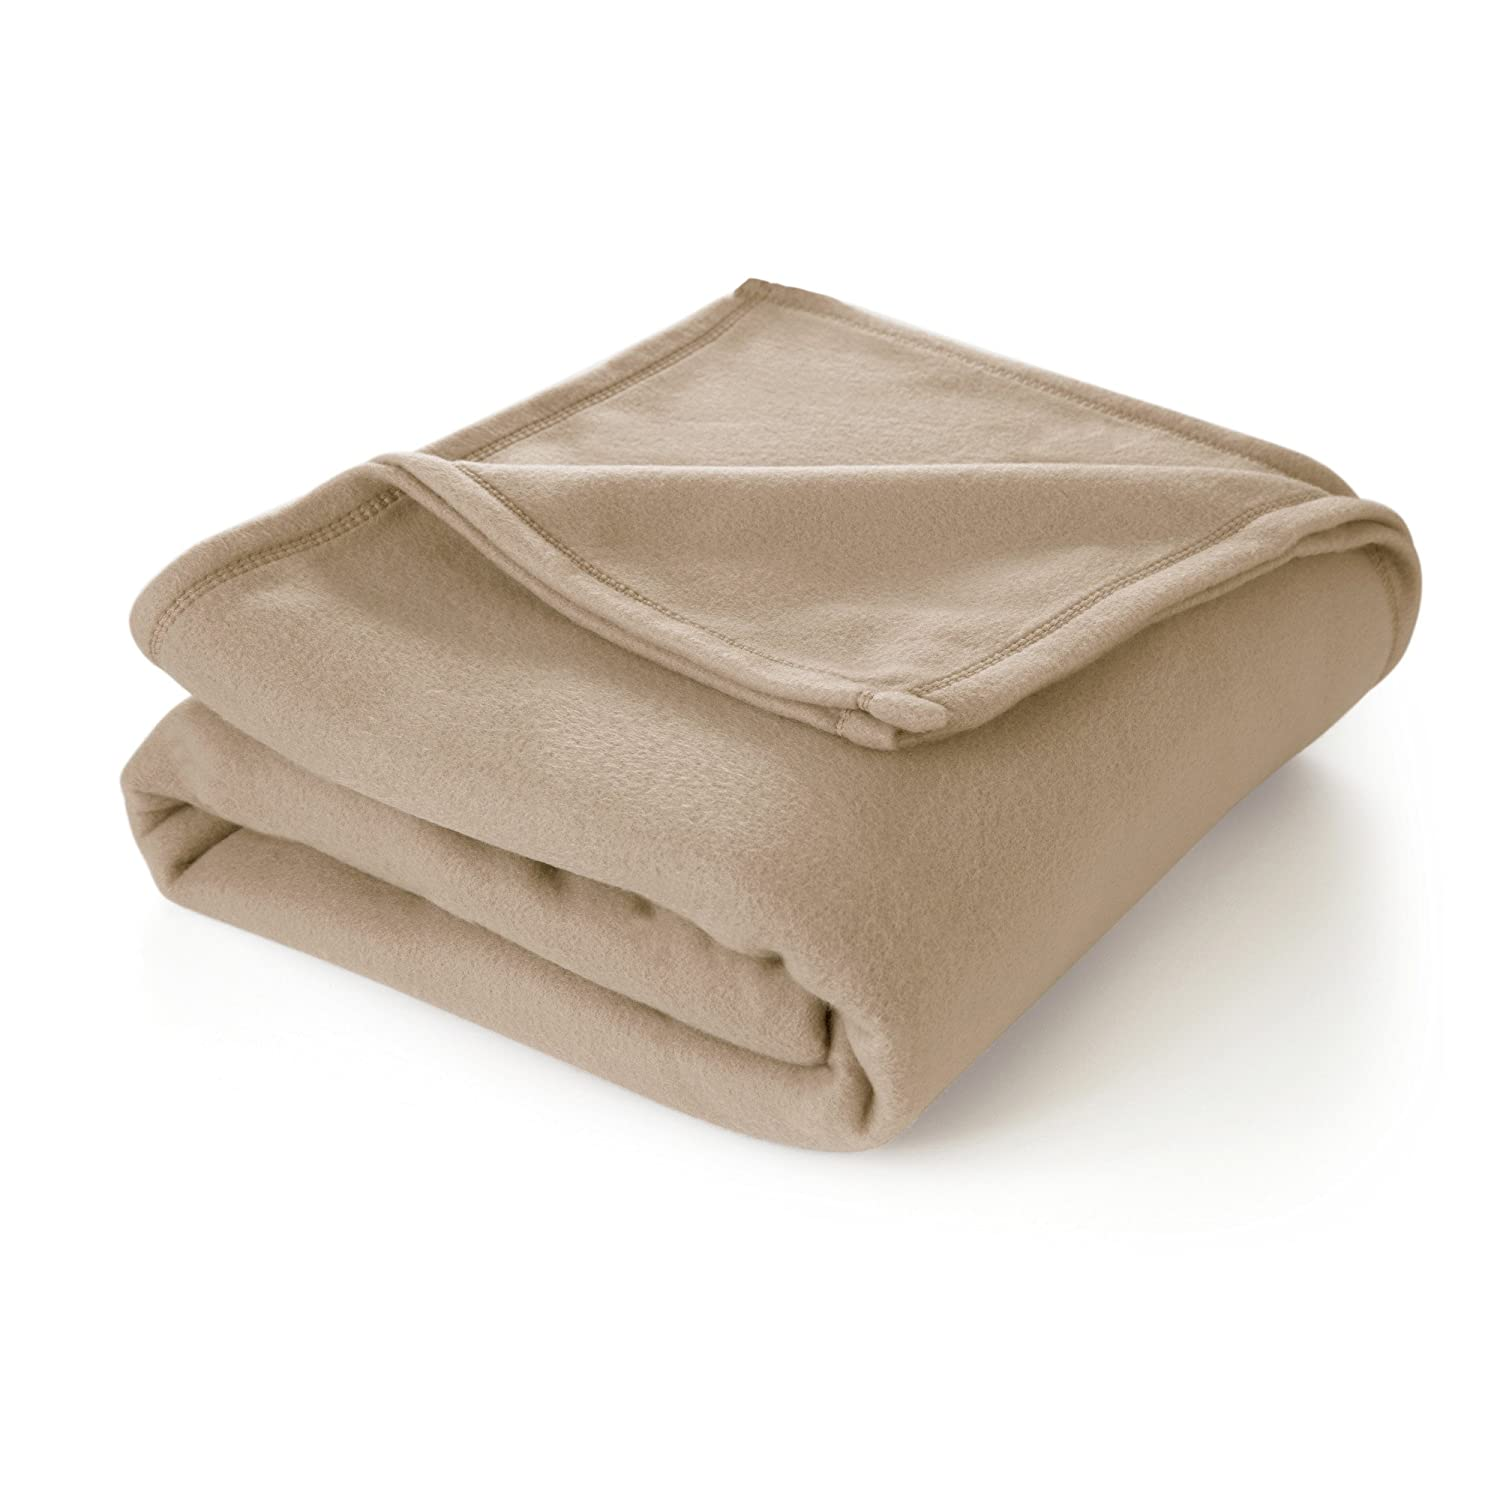 Martex Super Soft Fleece Blanket - Twin, Warm, Lightweight, Pet-Friendly, Throw for Home Bed, Sofa & Dorm - Basil C100226